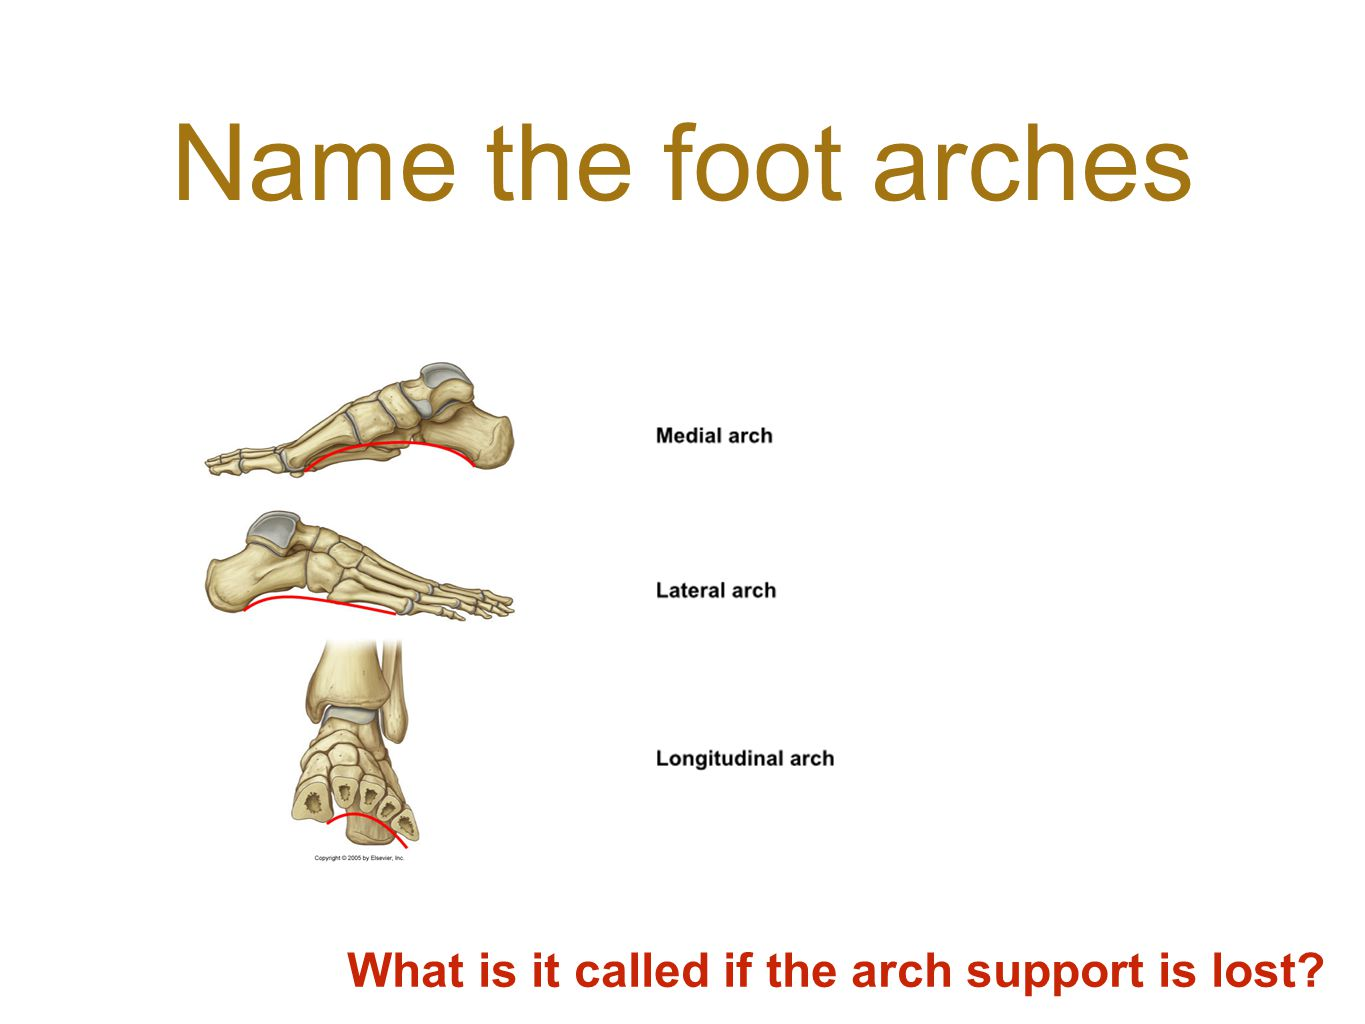 What is it called if the arch support is lost